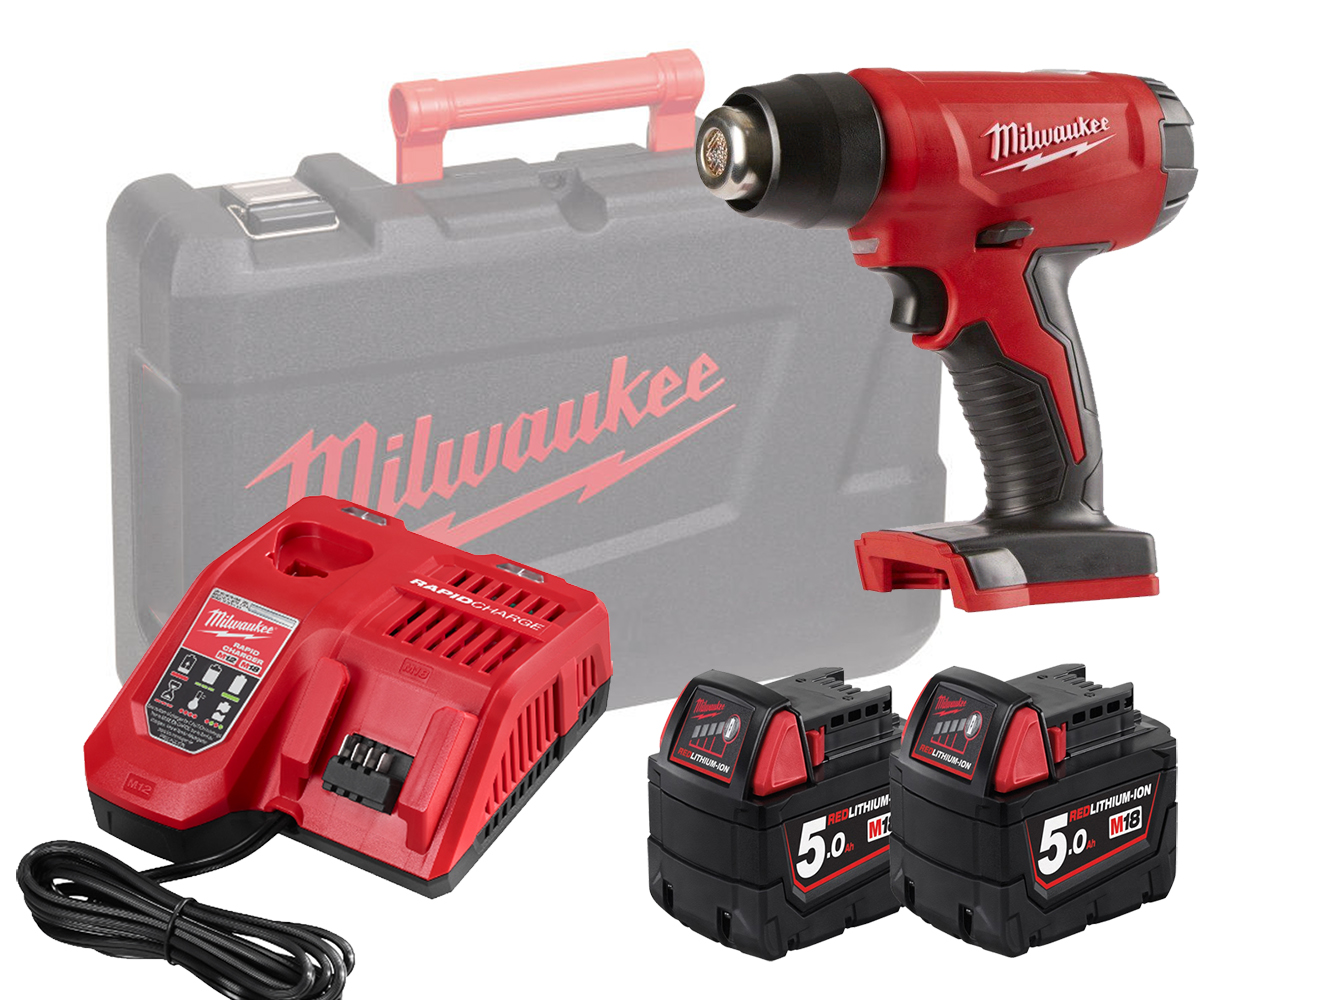 MILWAUKEE 18V FUEL BRUSHLESS HEAT GUN - M18BHG - 5.0AH PACK